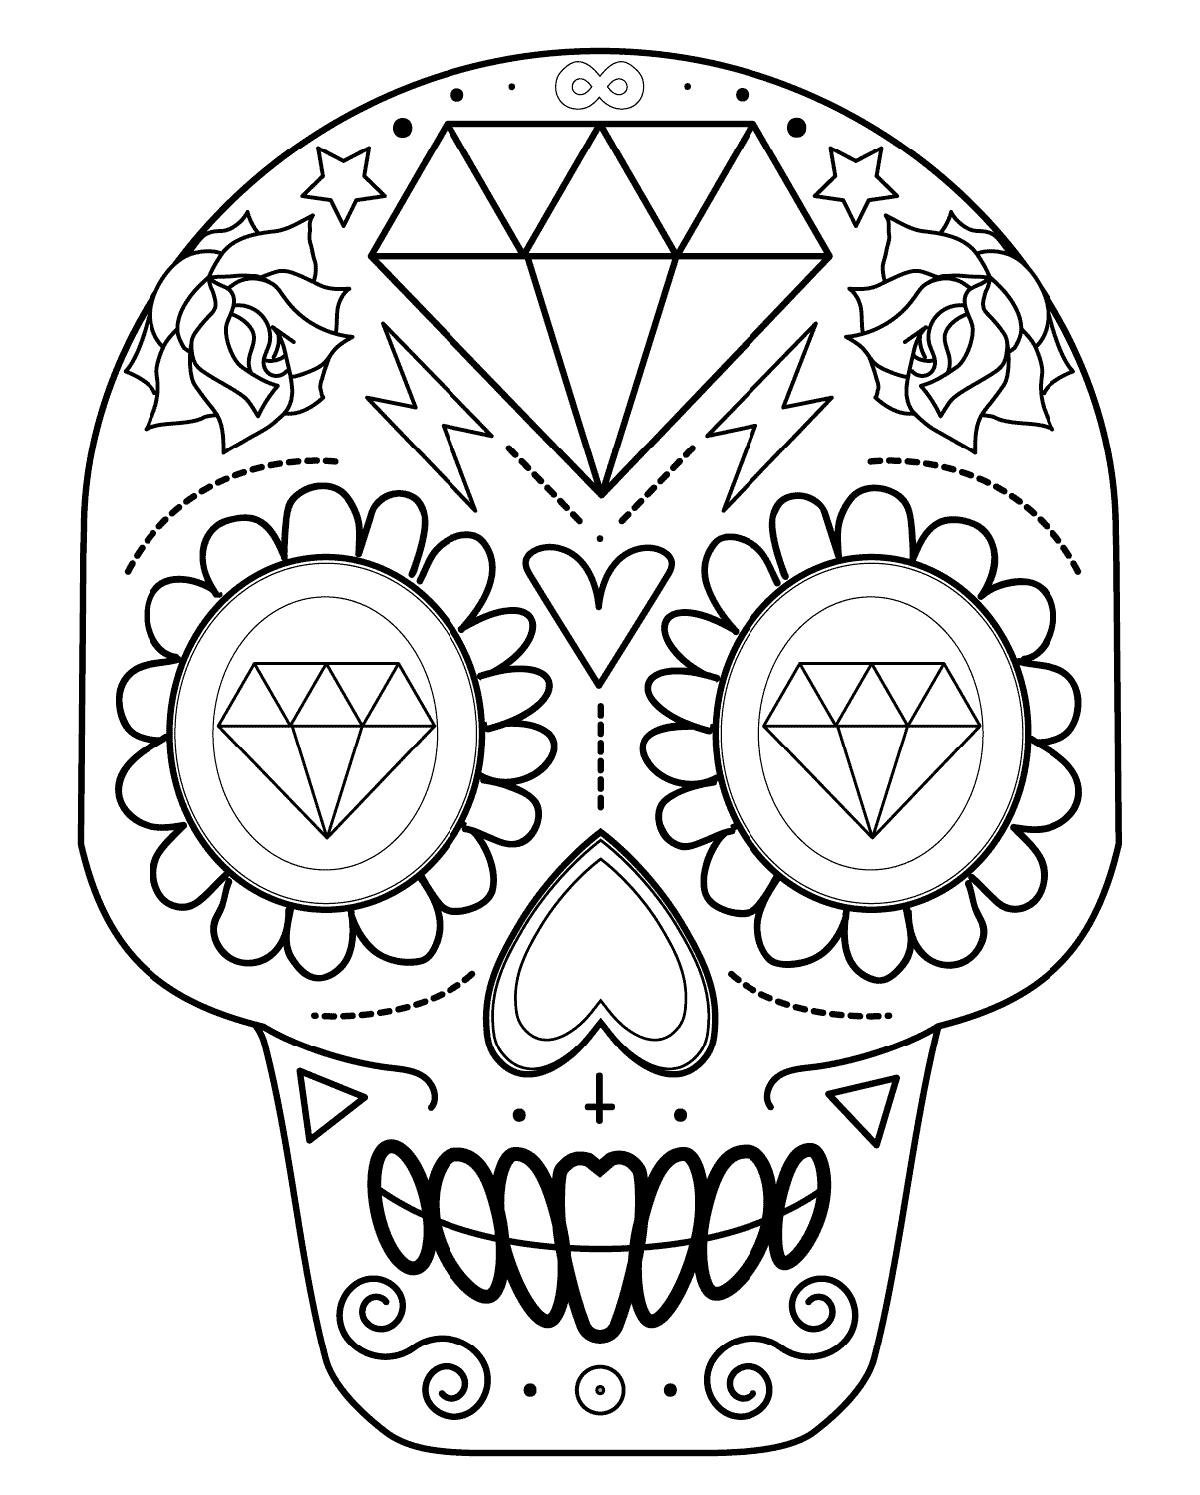 Easy Sugar Skull Coloring